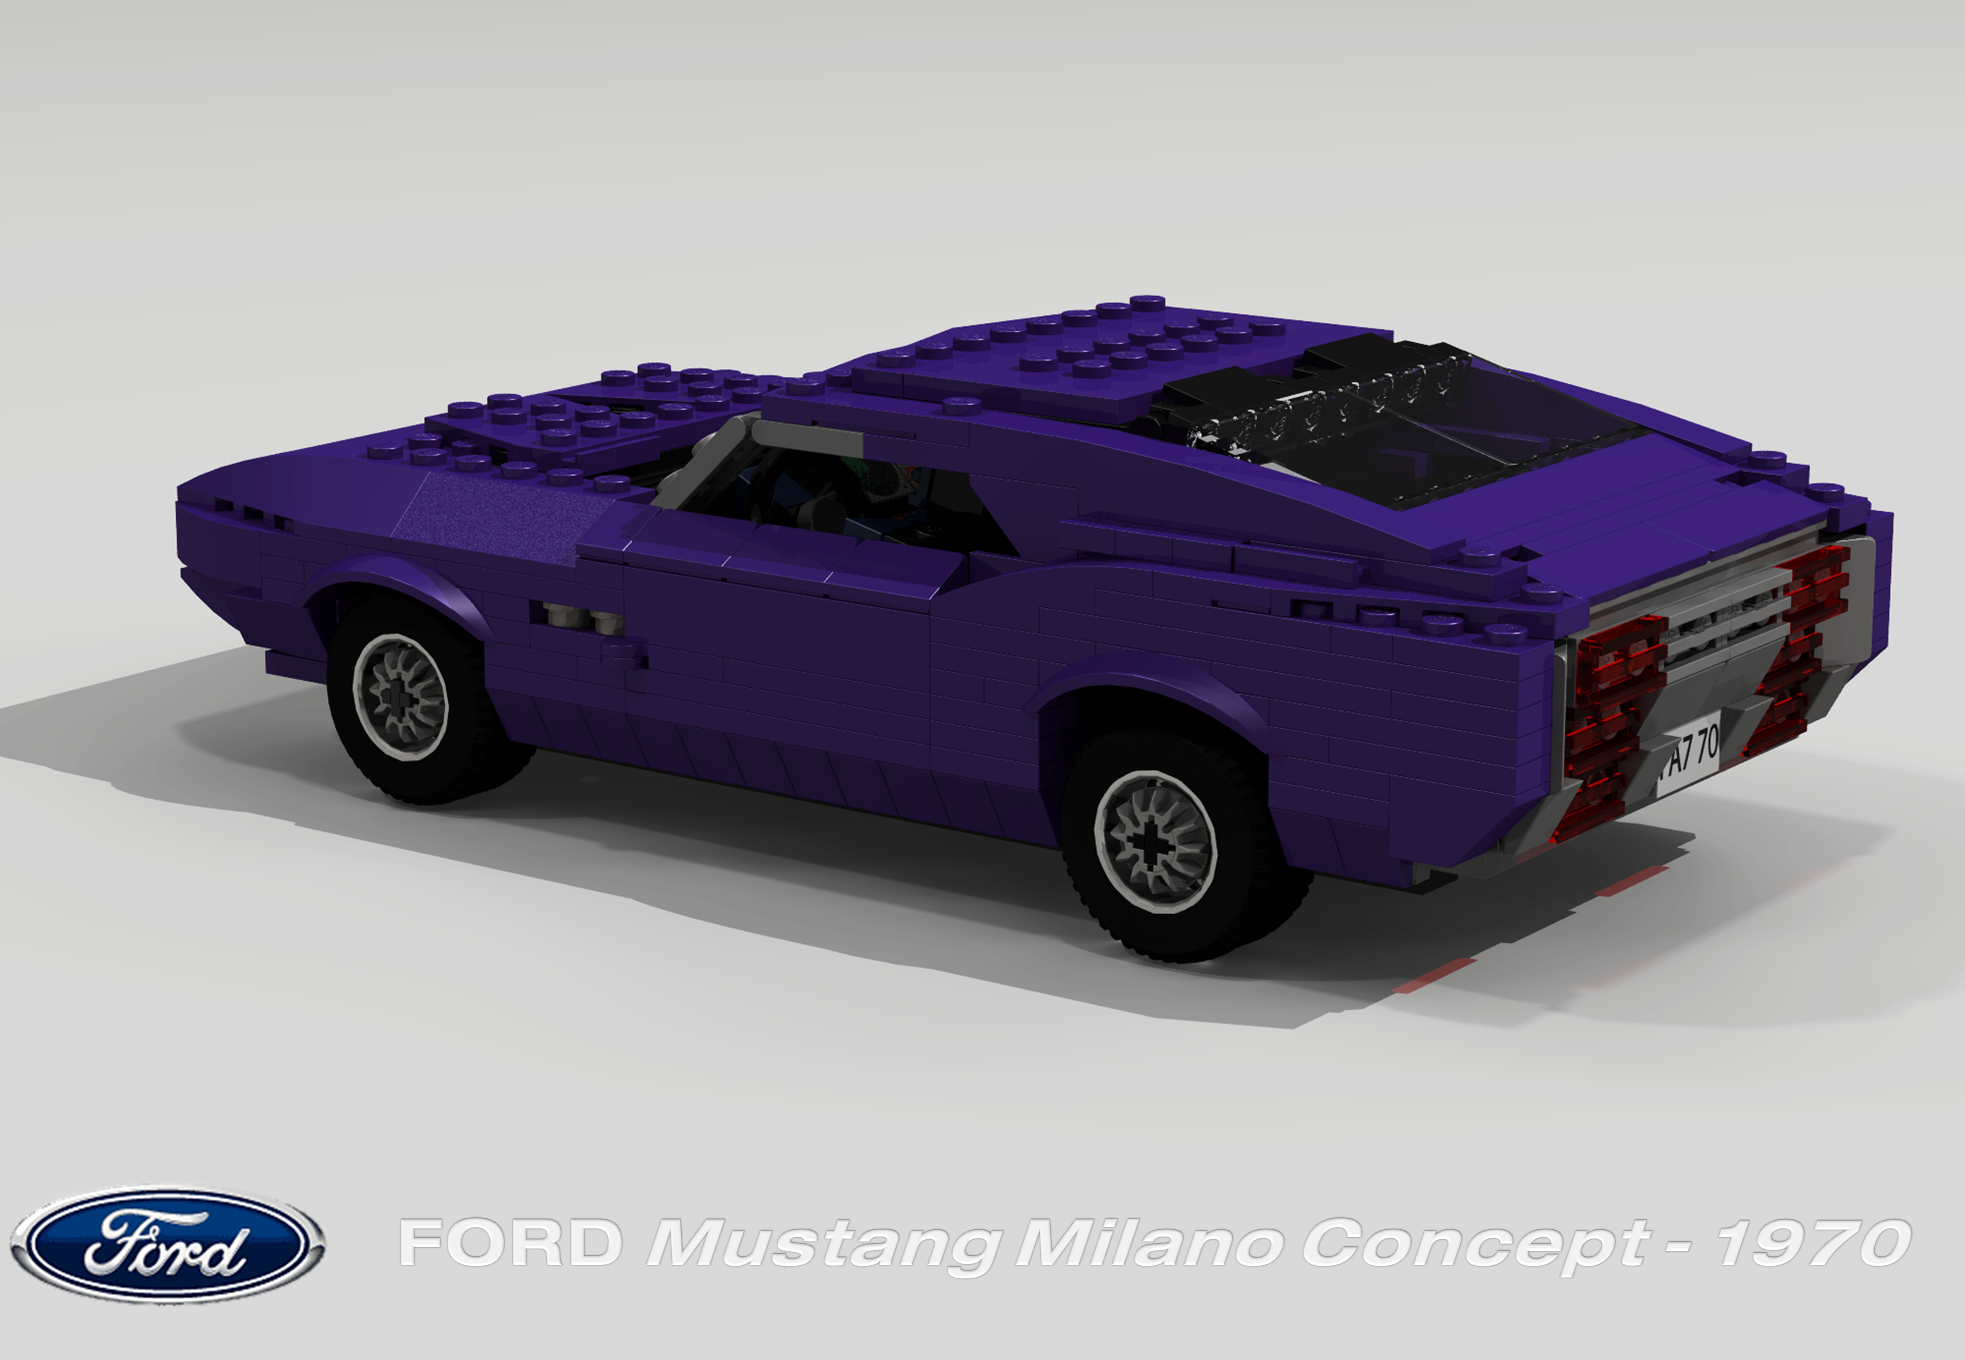 ford_mustang_milano_concept_1970_02.png